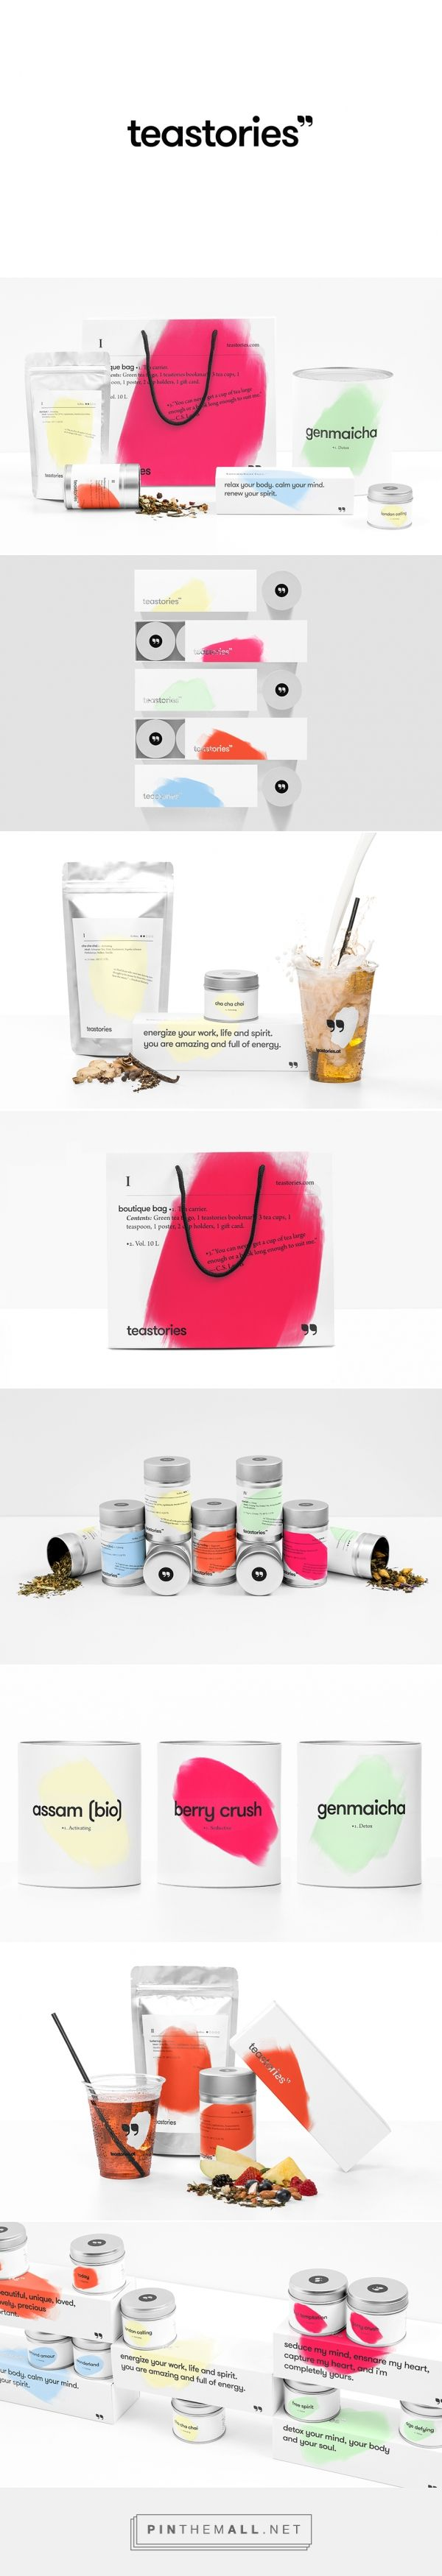 Teastories packaging branding via Anagrama curated by Packaging Diva PD. Teastories is a tea store offering selected premium tea products located in Vienna.